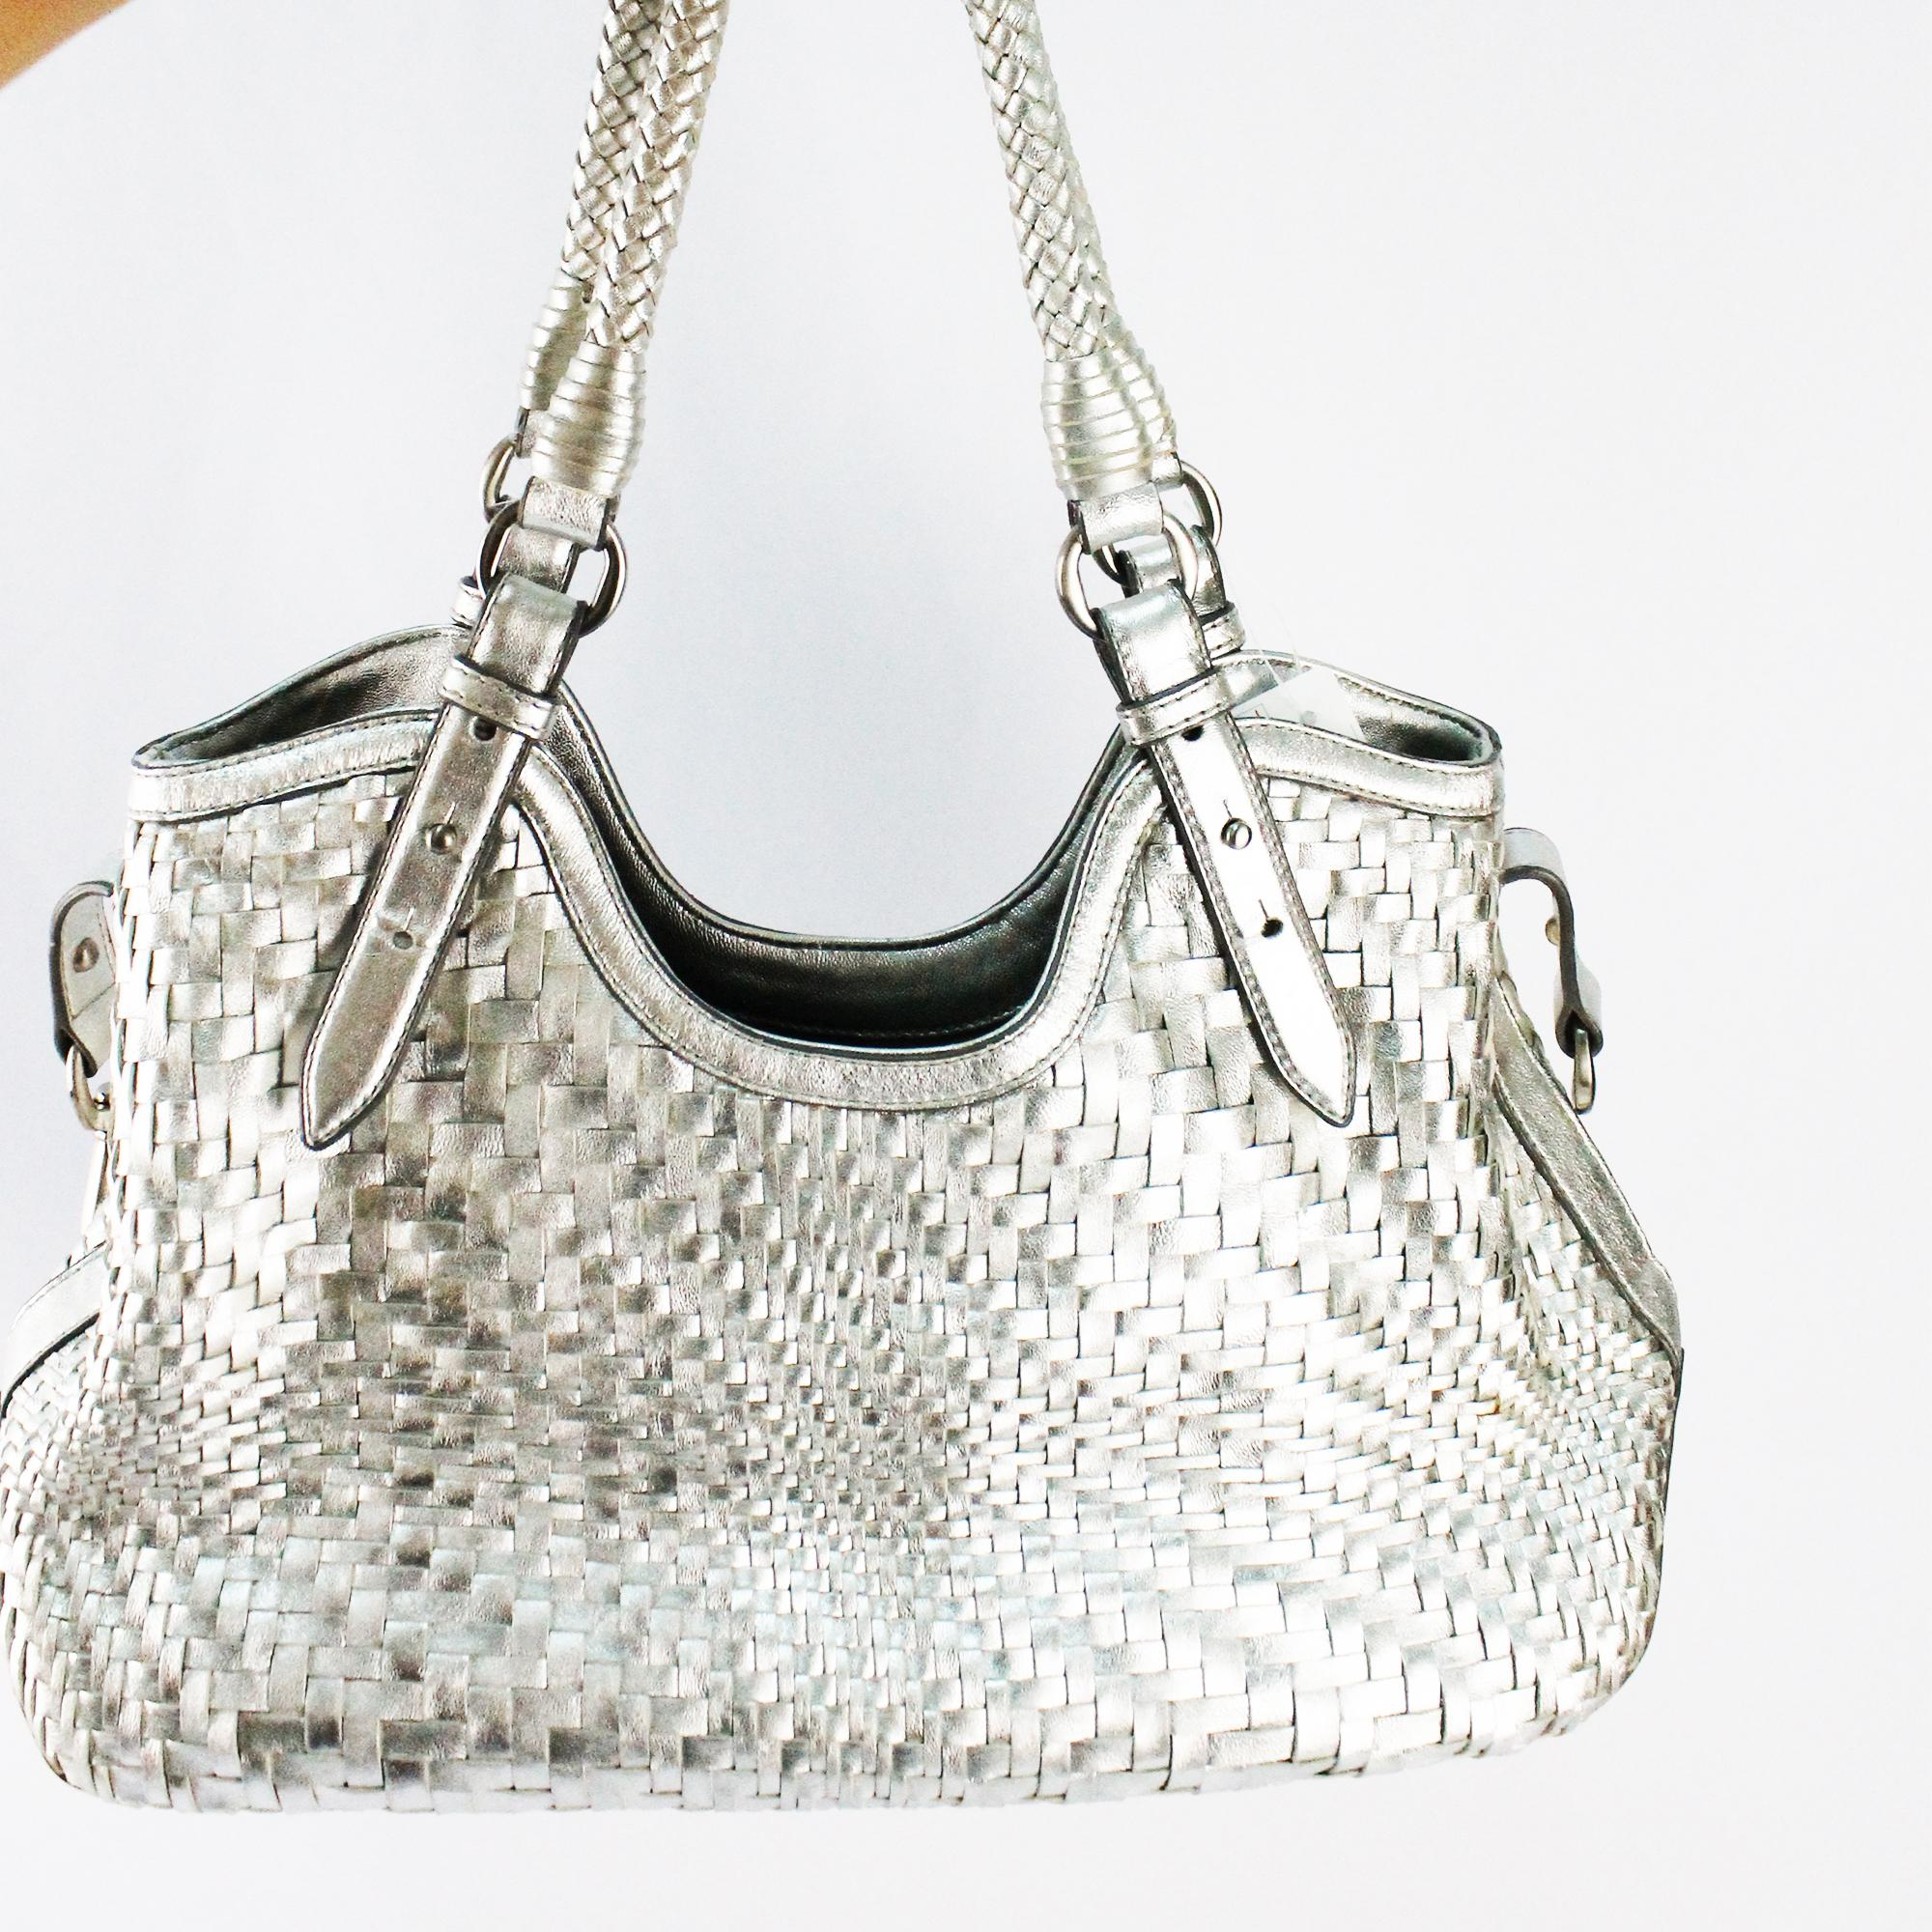 67a1ffe5016 COLE HAAN - Genevieve Woven Triangle Tote Satchel In Silver Leather  (Preowned-like new